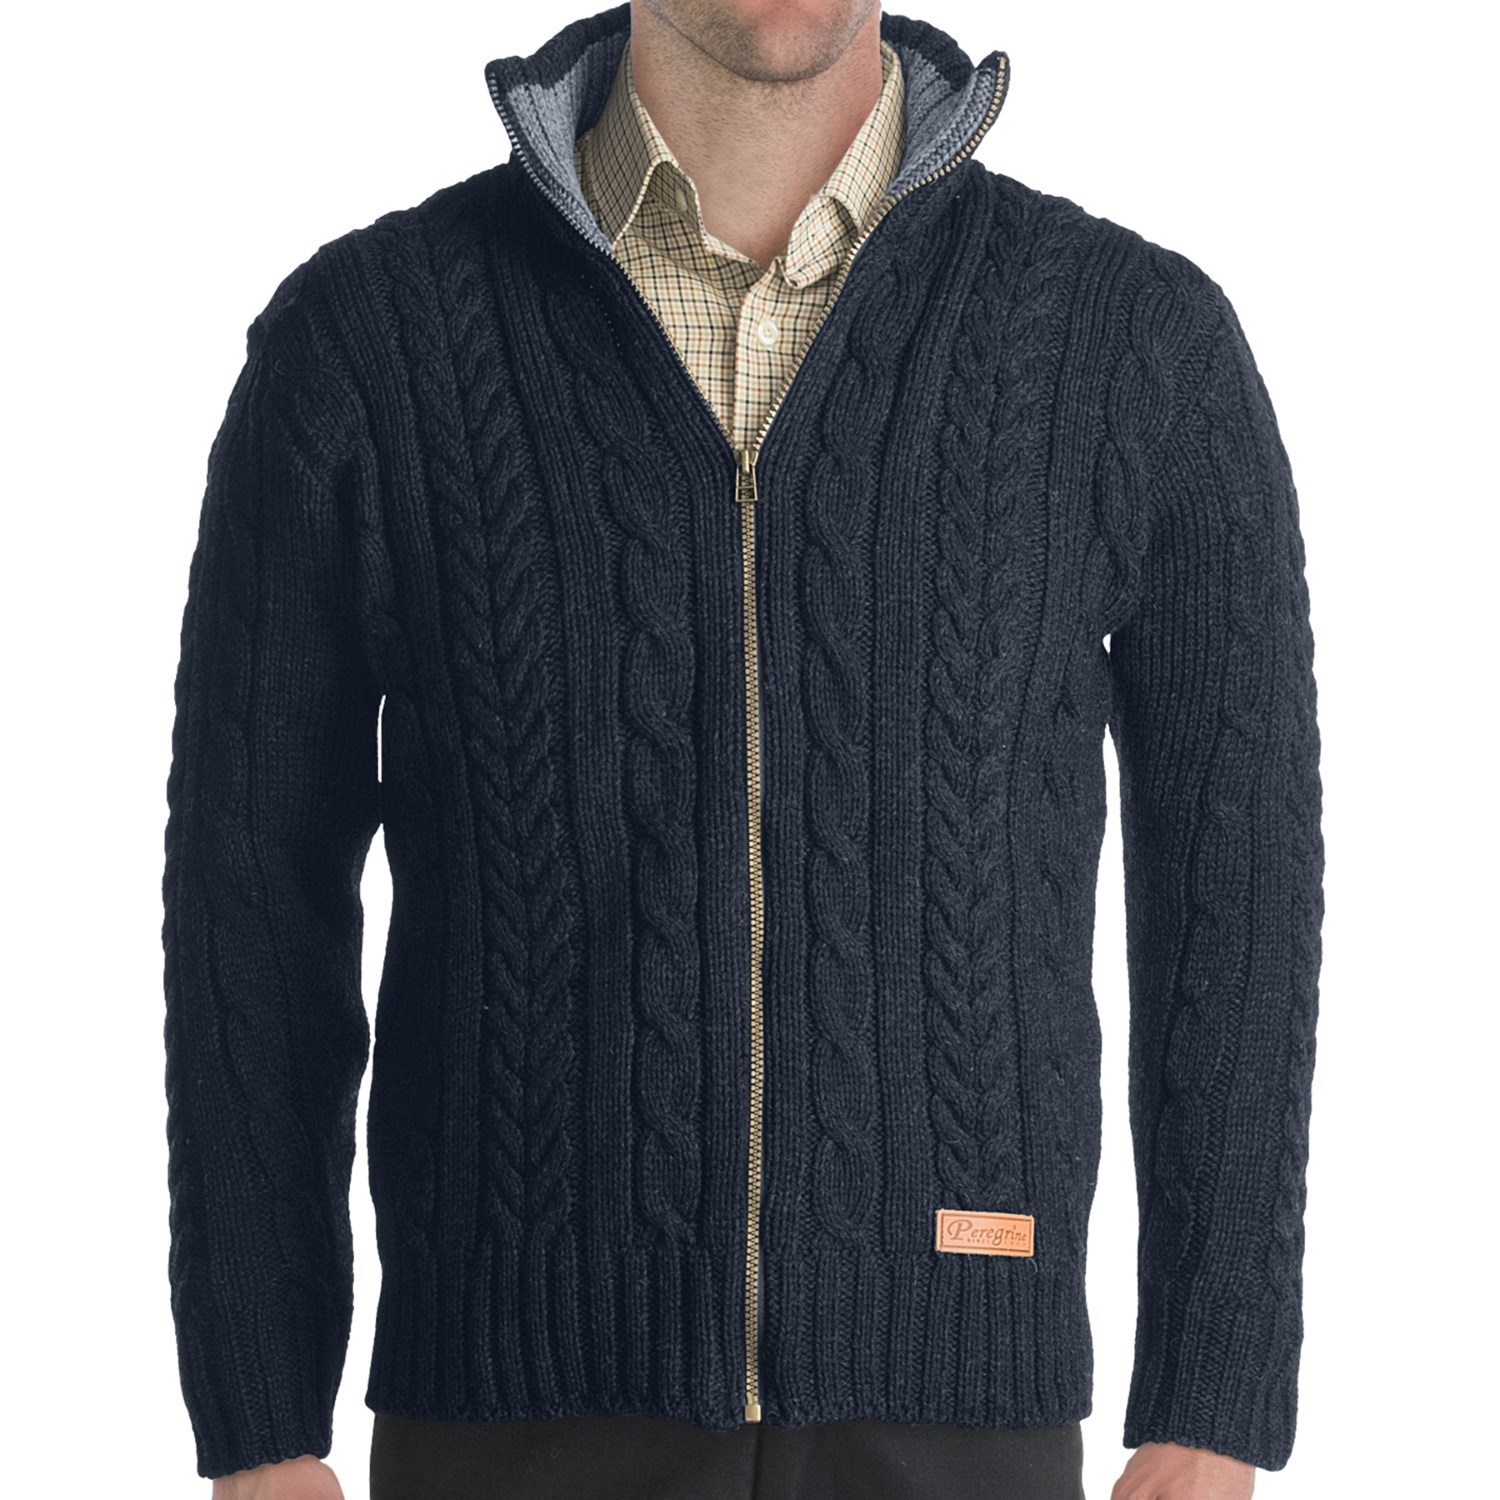 Merino Full Zip Sweater - Cardigan With Buttons